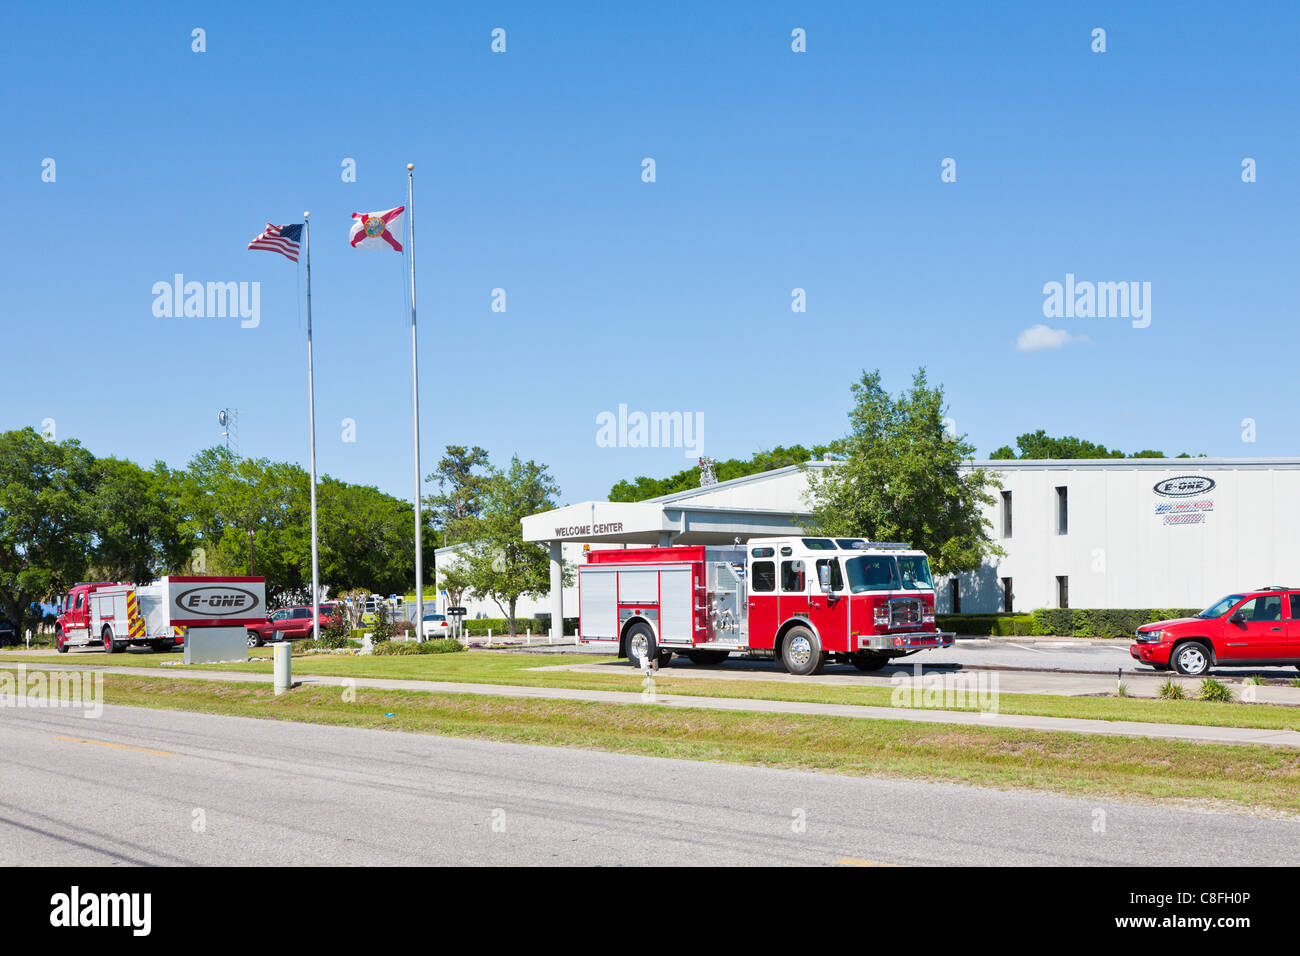 Florida Fire Truck Stock Photos Images 19601970 Mercedes Benz Trucks In Front Of E One Equipment Manufacturing Facility Ocala